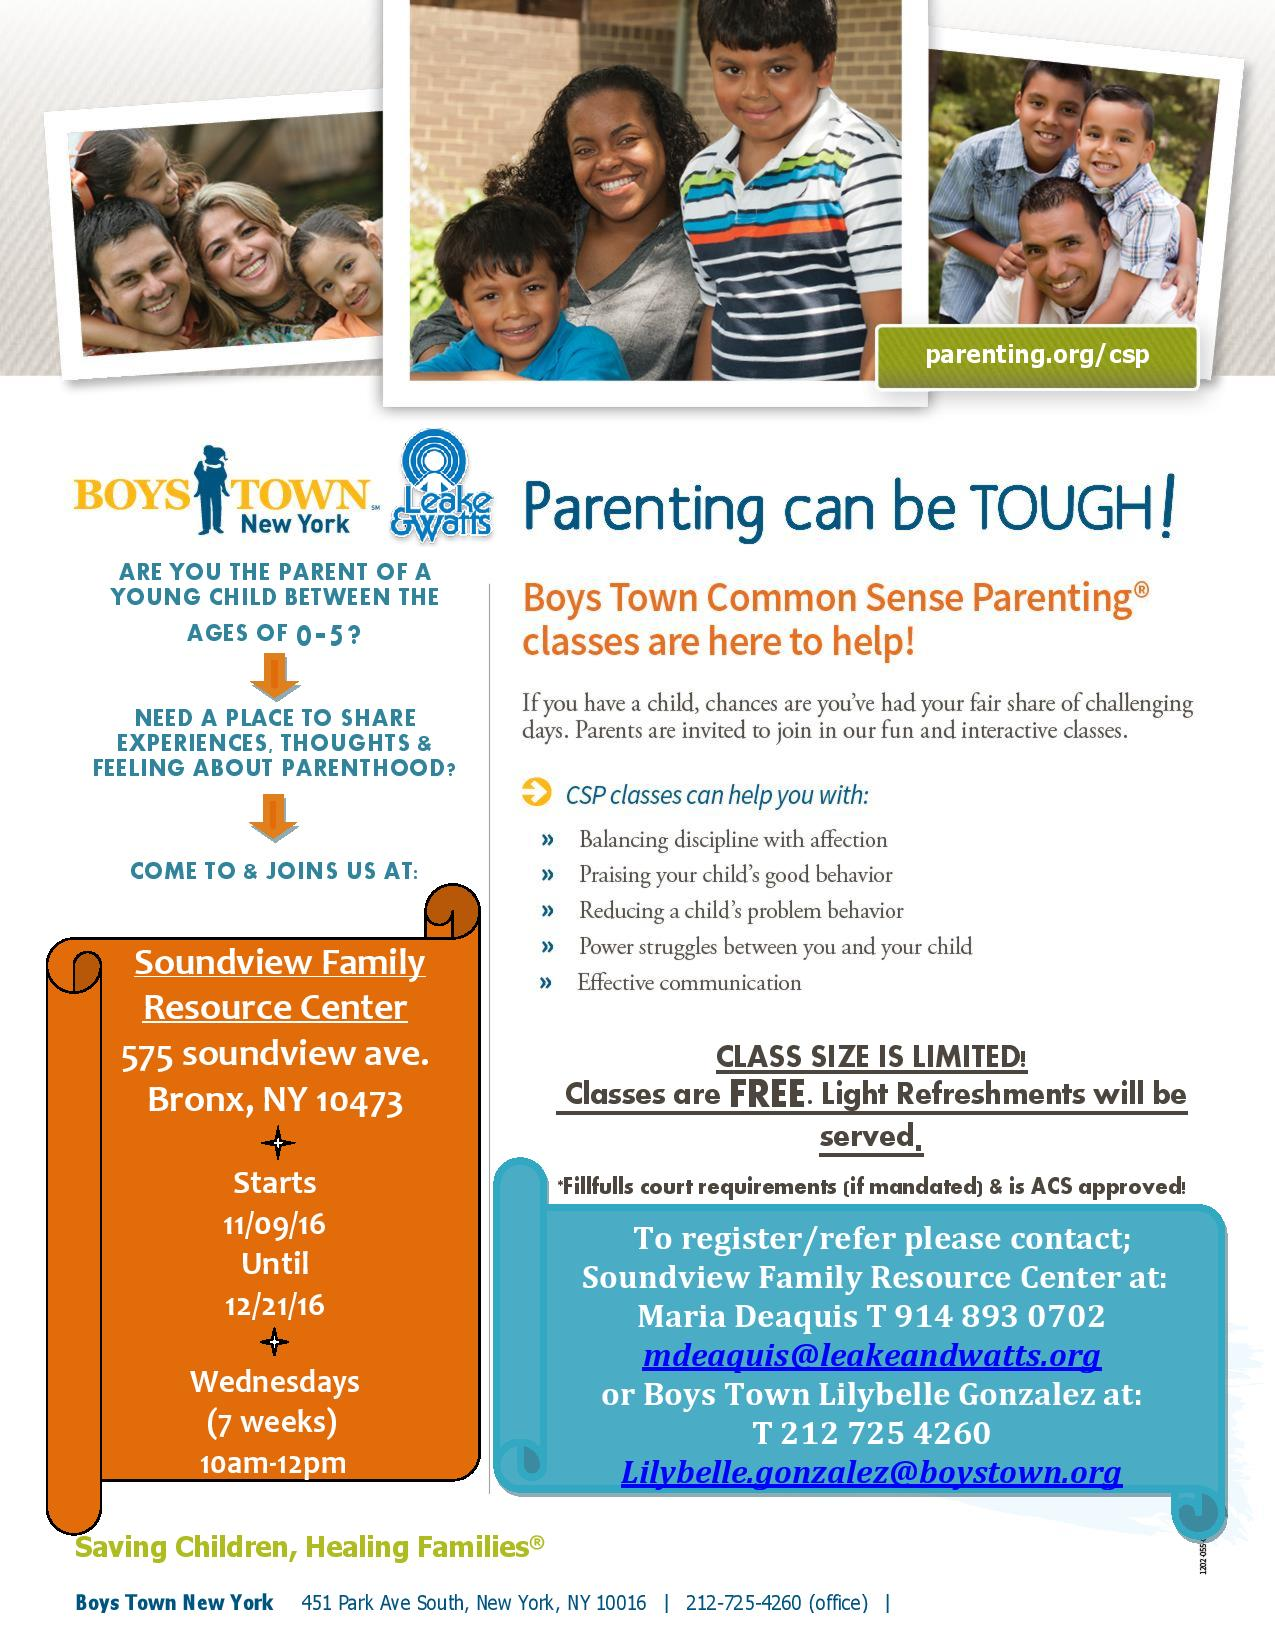 boystown-parenting-class-flyer-2016-page-001